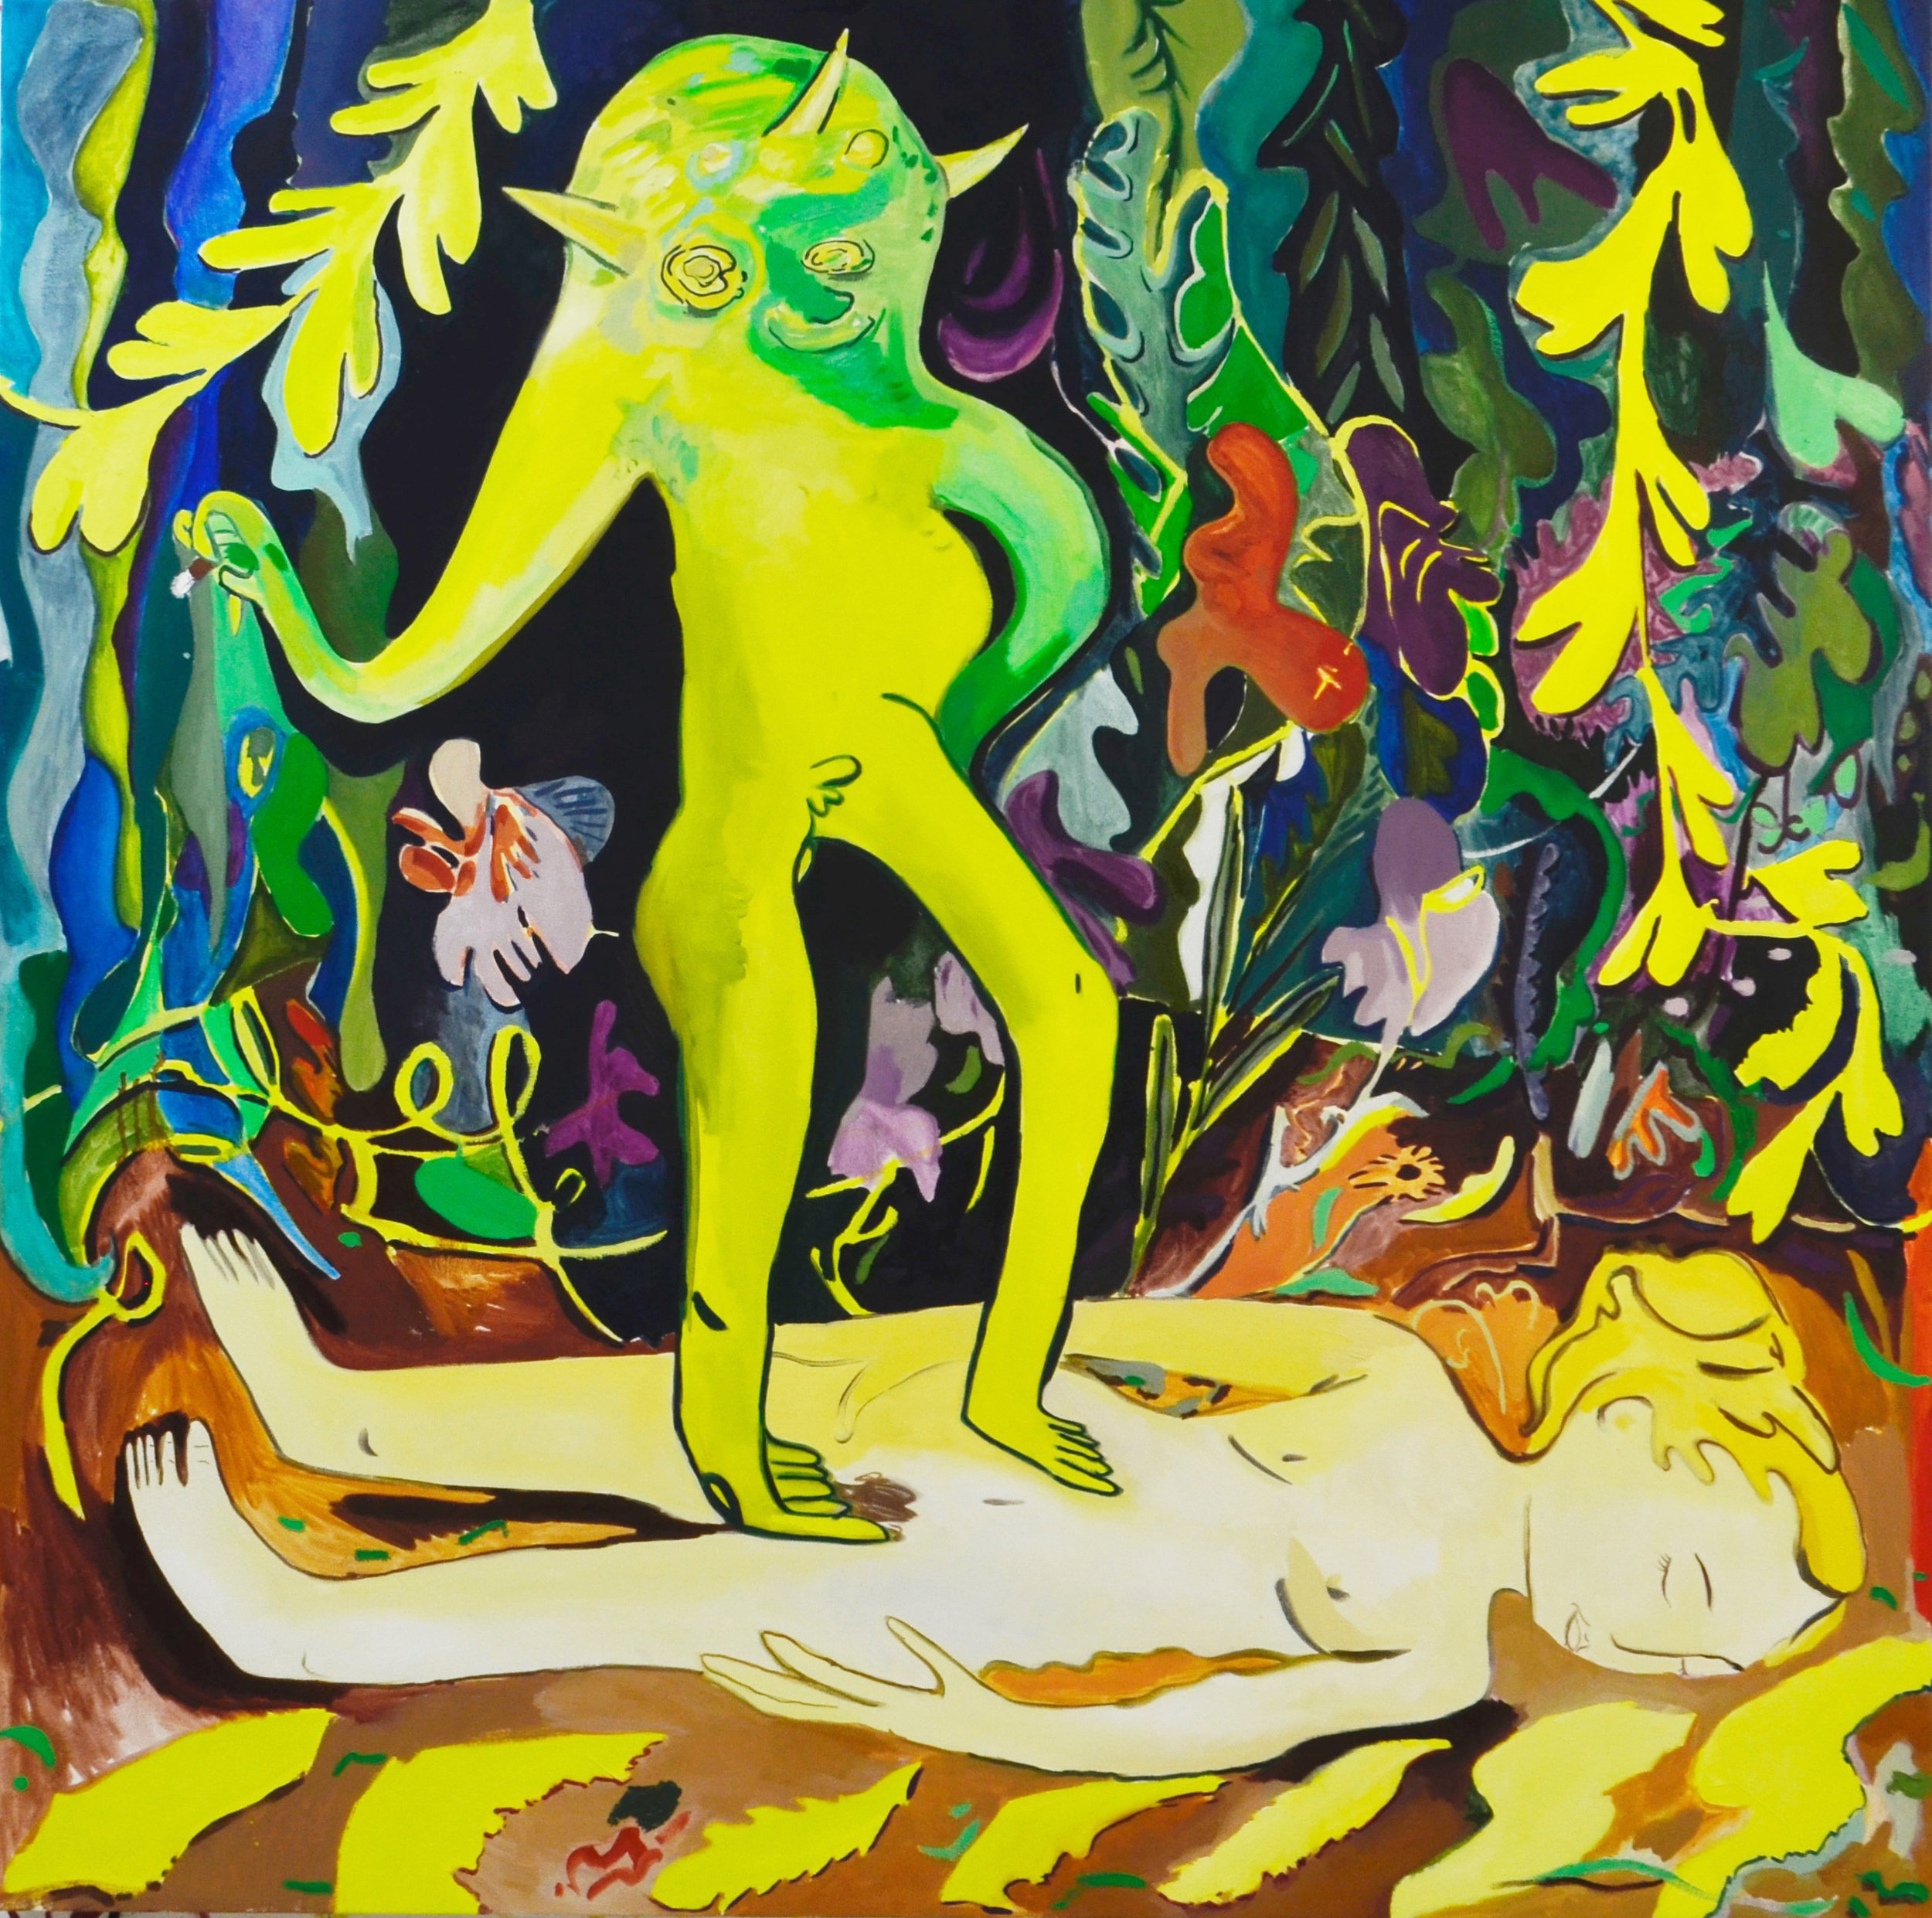 Frog Man, oil on canvas, 53 x 54 inches, 2017.